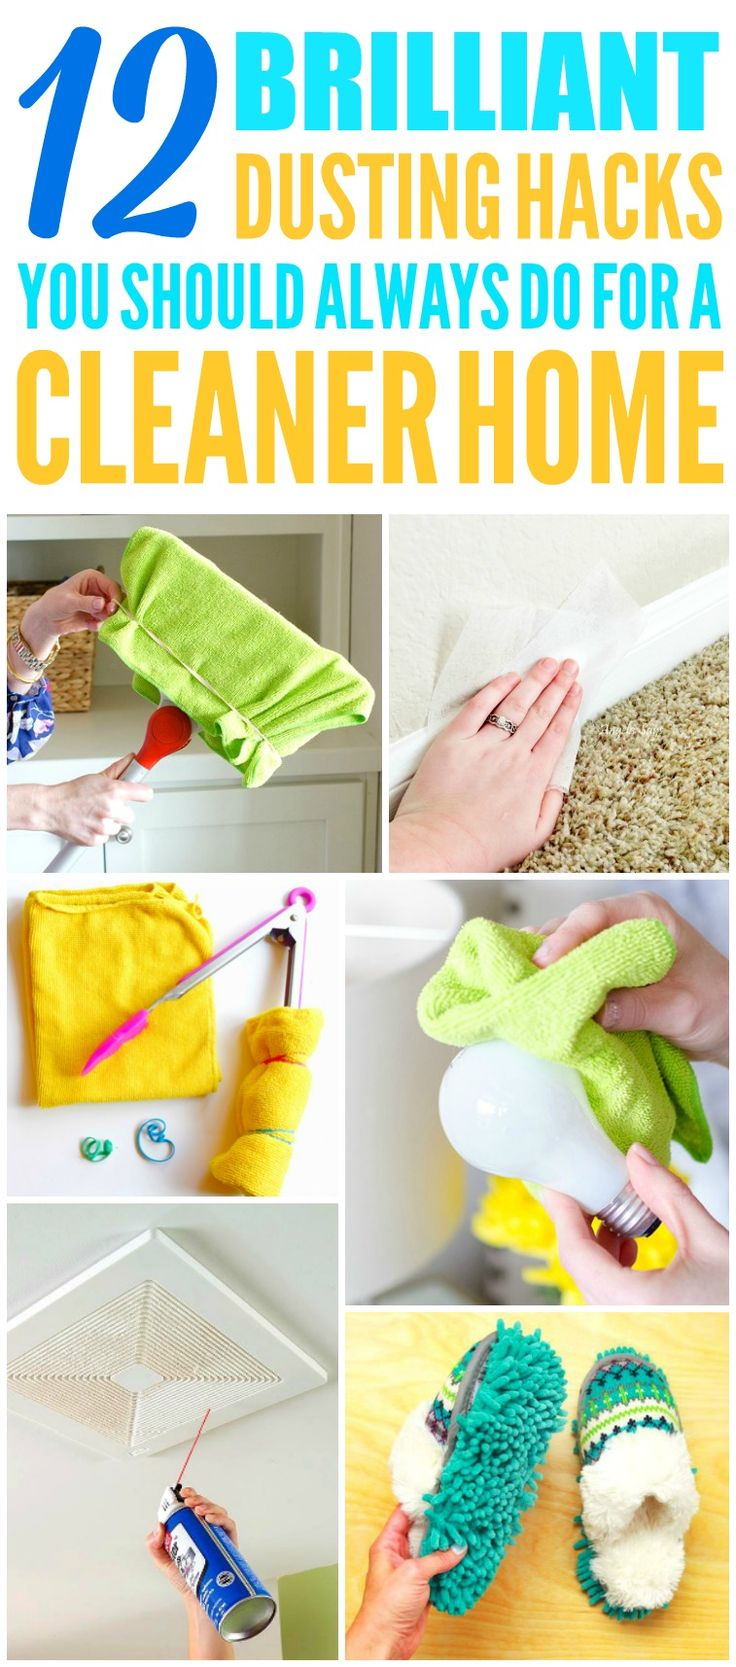 These 10 brilliant and easy dusting hacks are THE BEST! Now I have some AMAZING ways to clean my home! These cleaning tips and hacks make cleaning my house so much quicker and easier! Definitely pinning!